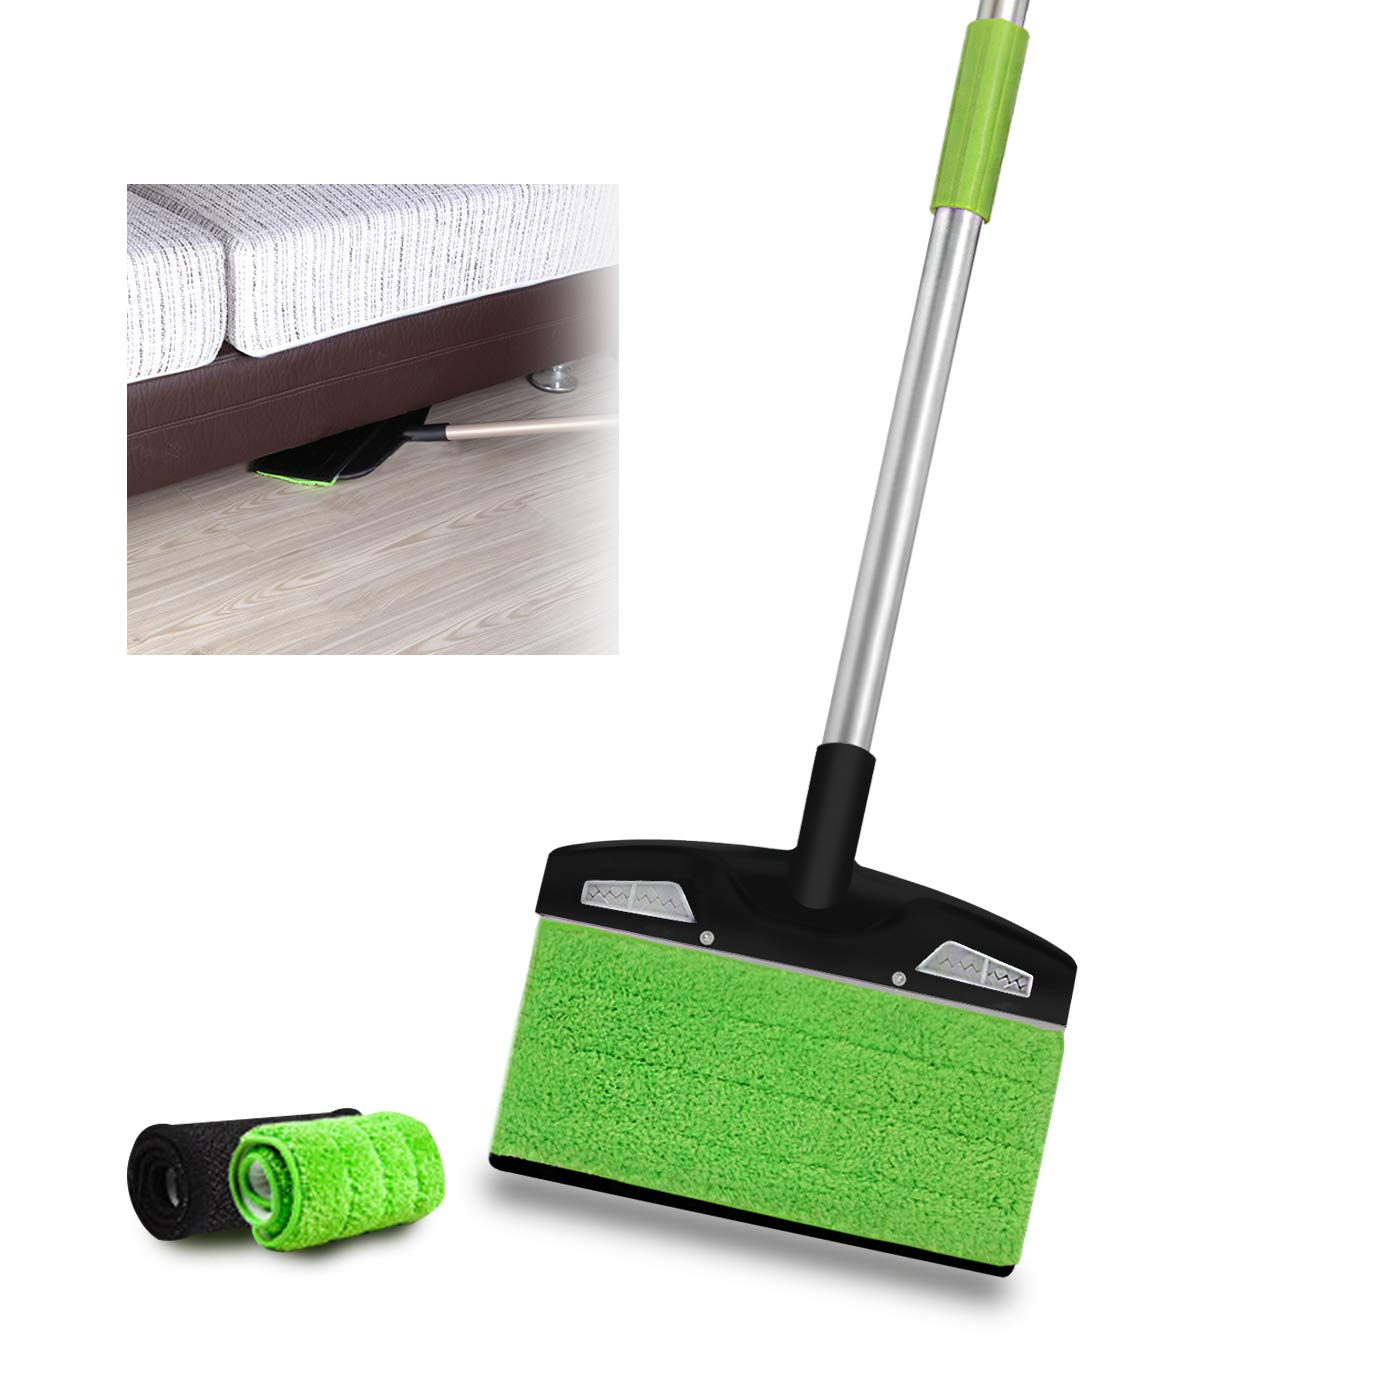 Dustpan Set Dust pan and Broom Lobby Broom Combo Upright Grips Sweep Set with Broom (Green)